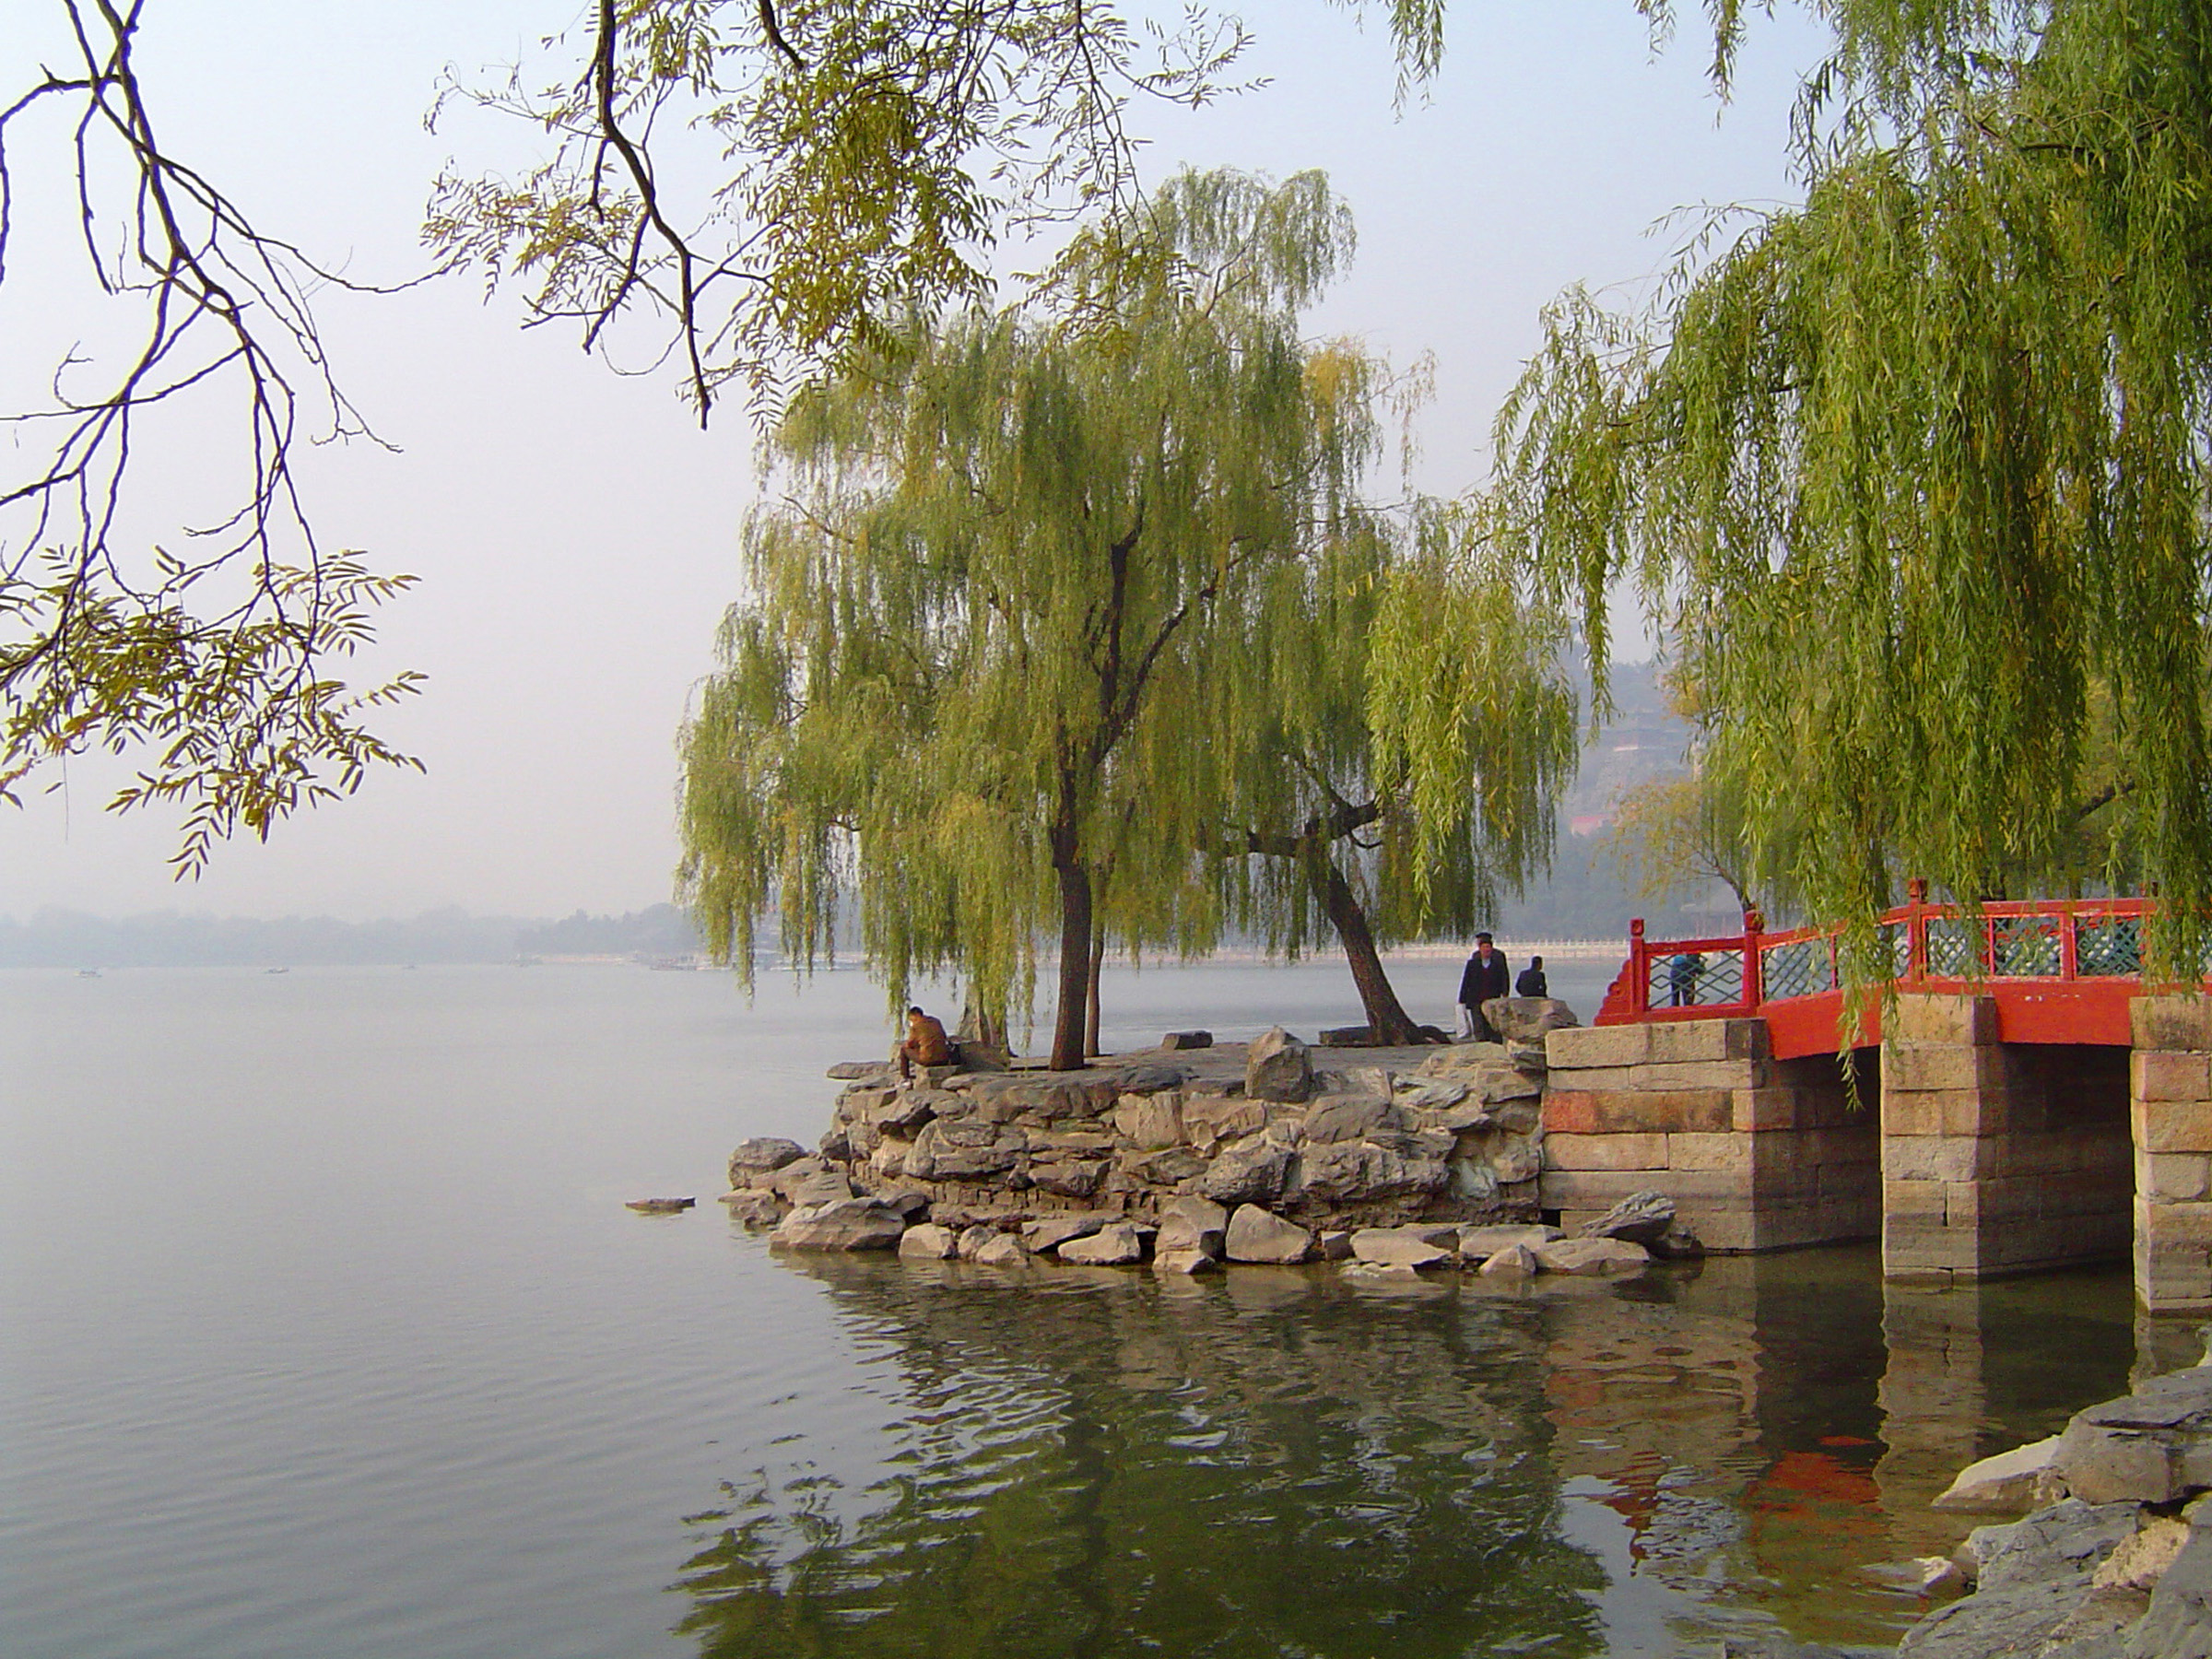 People standing under green weeping willow trees on a red wooden bridge to a stone headland on a tranquil scenic lake